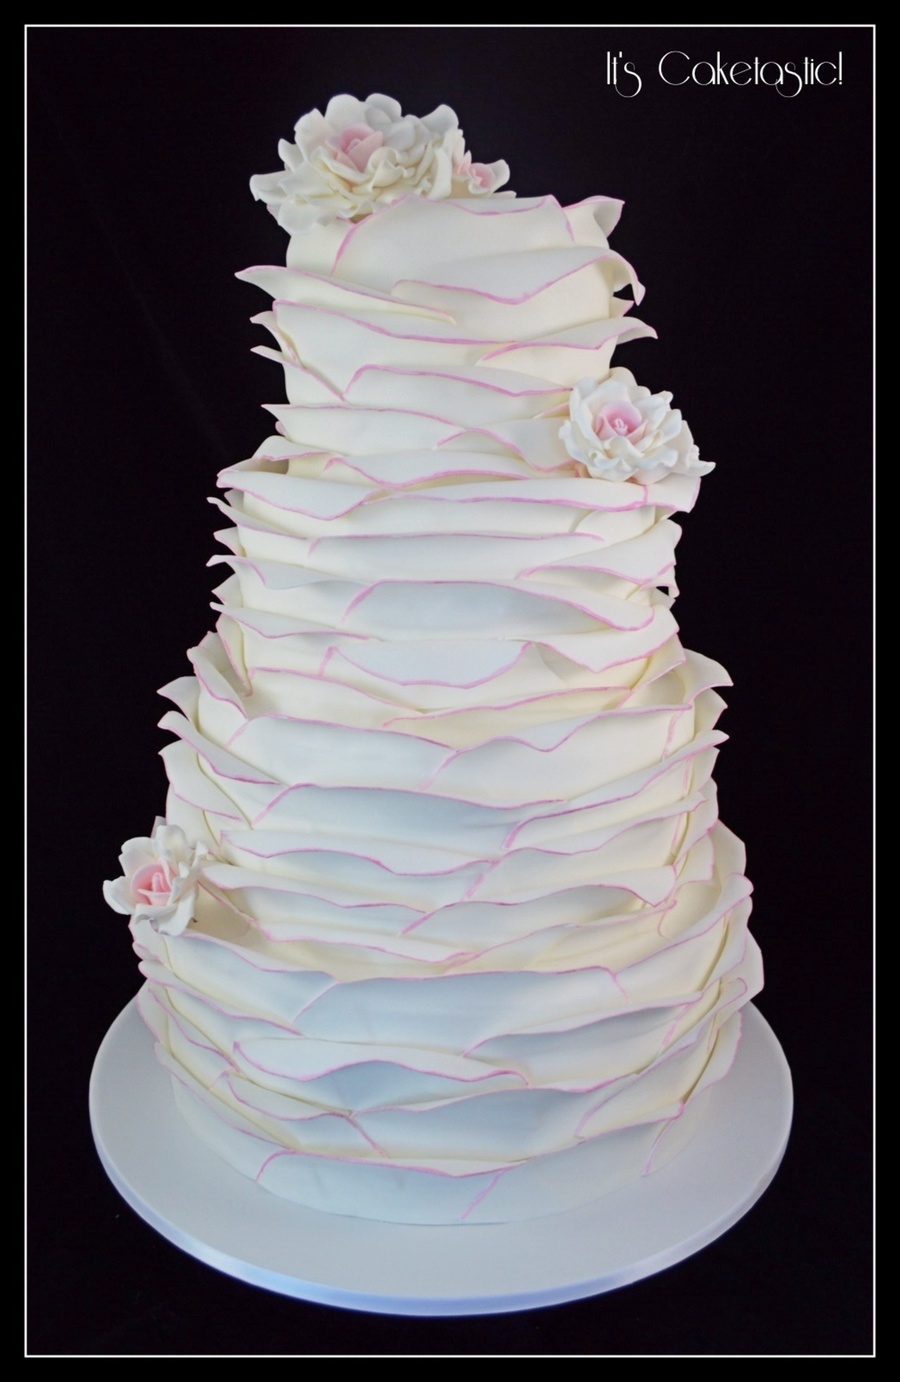 Large Ruffled Wedding Cake On Central